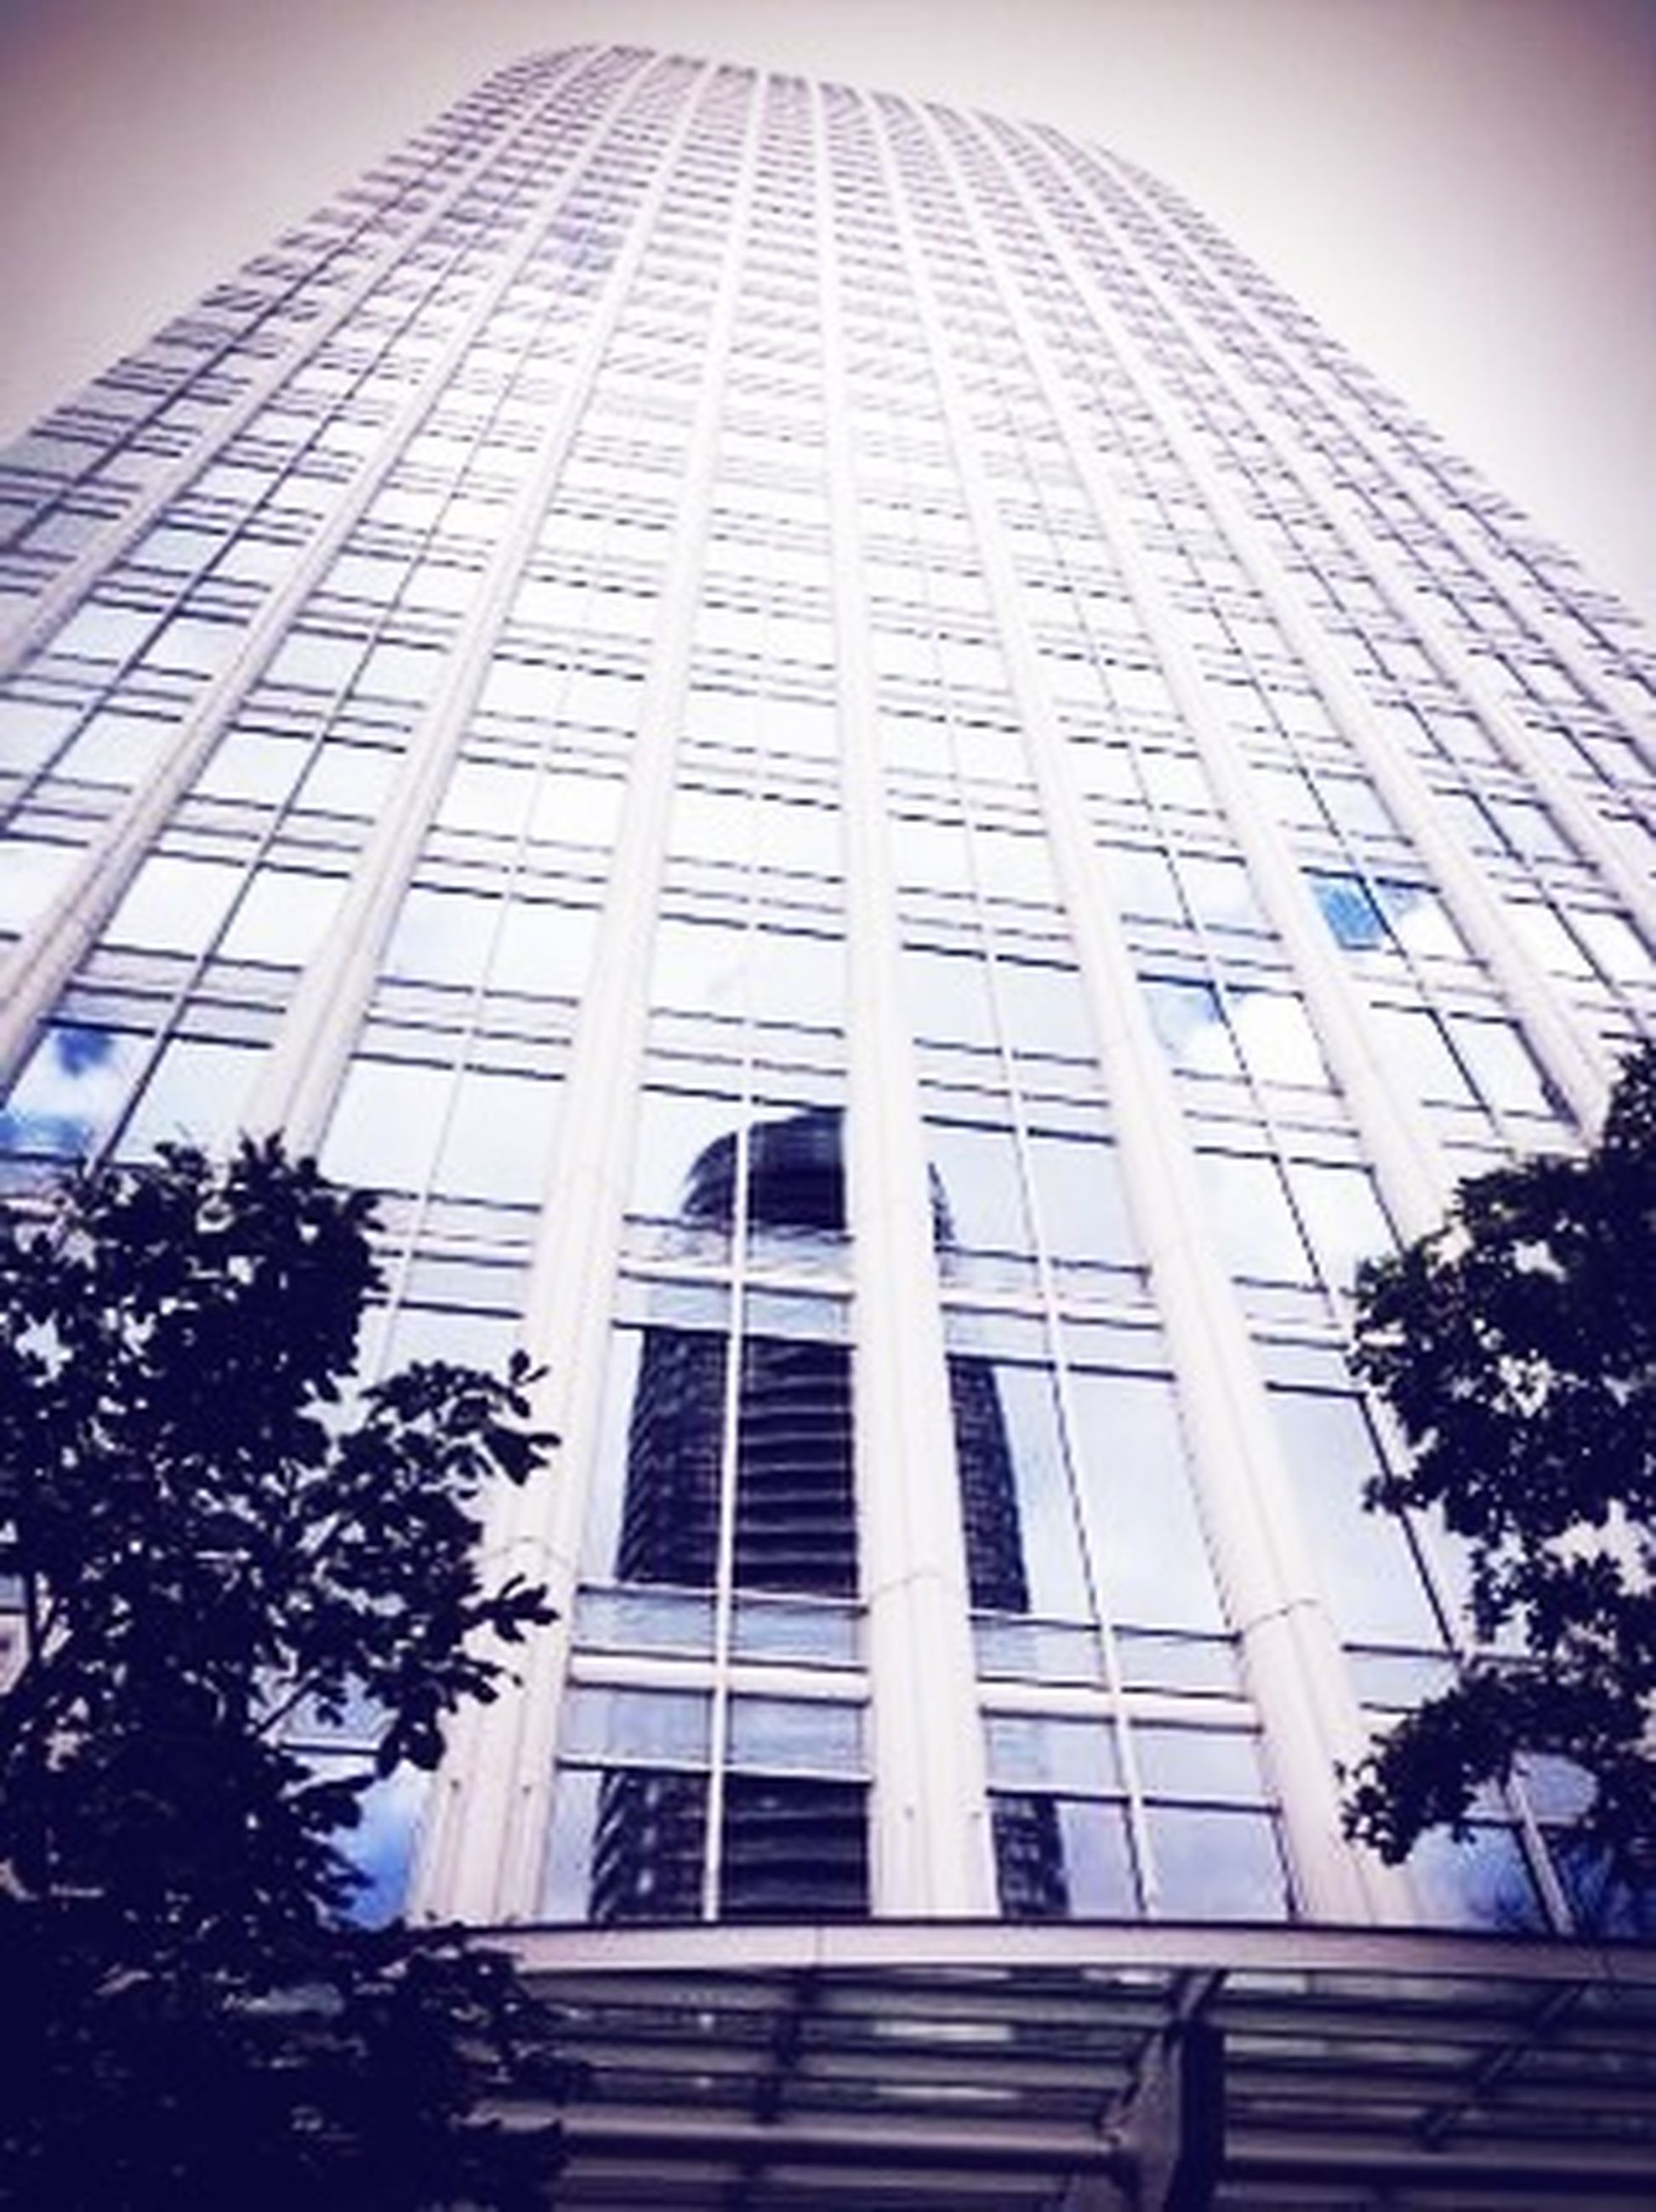 architecture, building exterior, built structure, low angle view, modern, office building, city, glass - material, window, building, tall - high, tree, tower, sky, skyscraper, reflection, day, facade, outdoors, clear sky